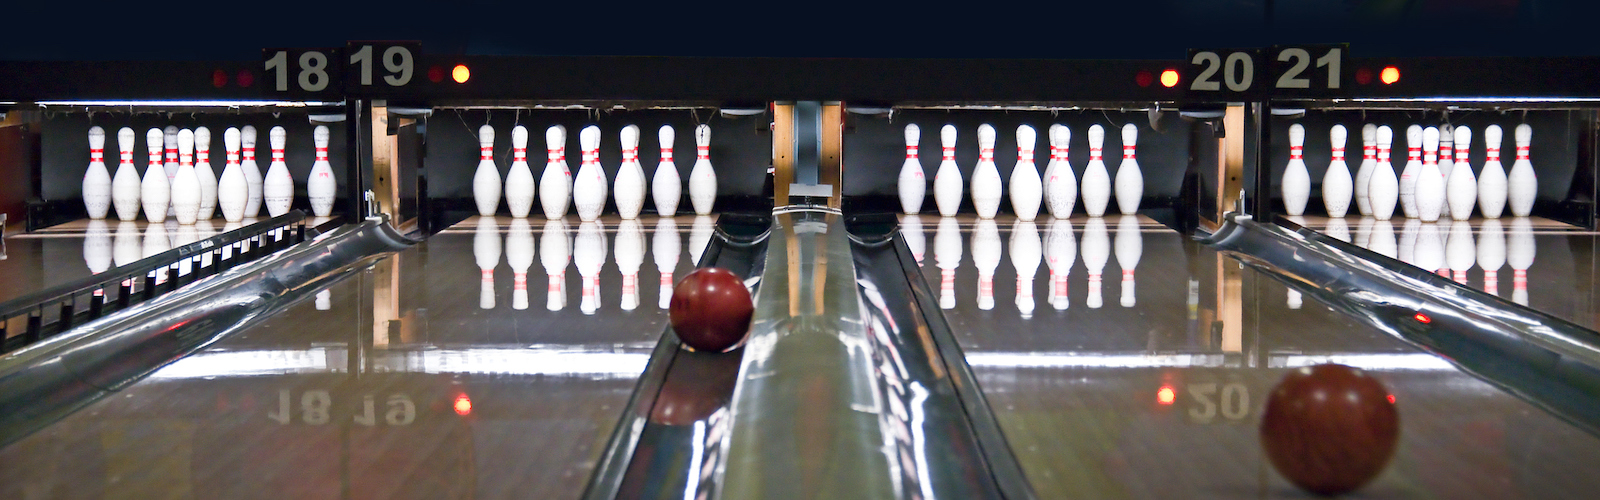 Bowling lines